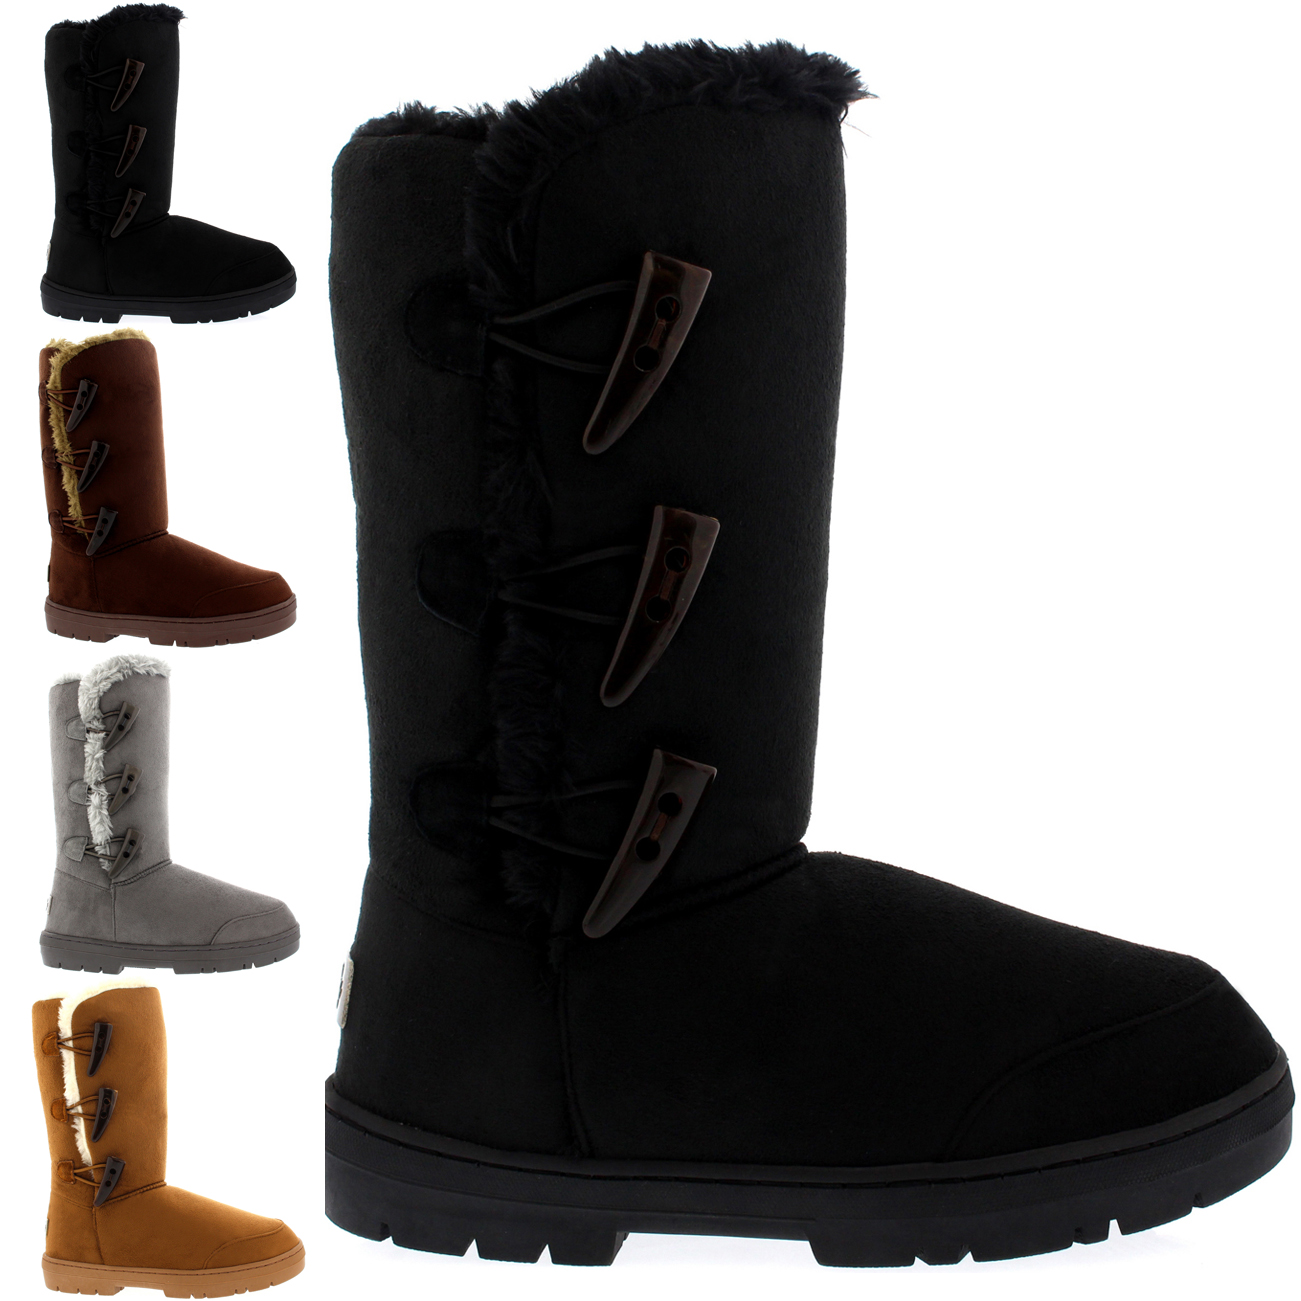 Triplet Toggle Short Classic Boots